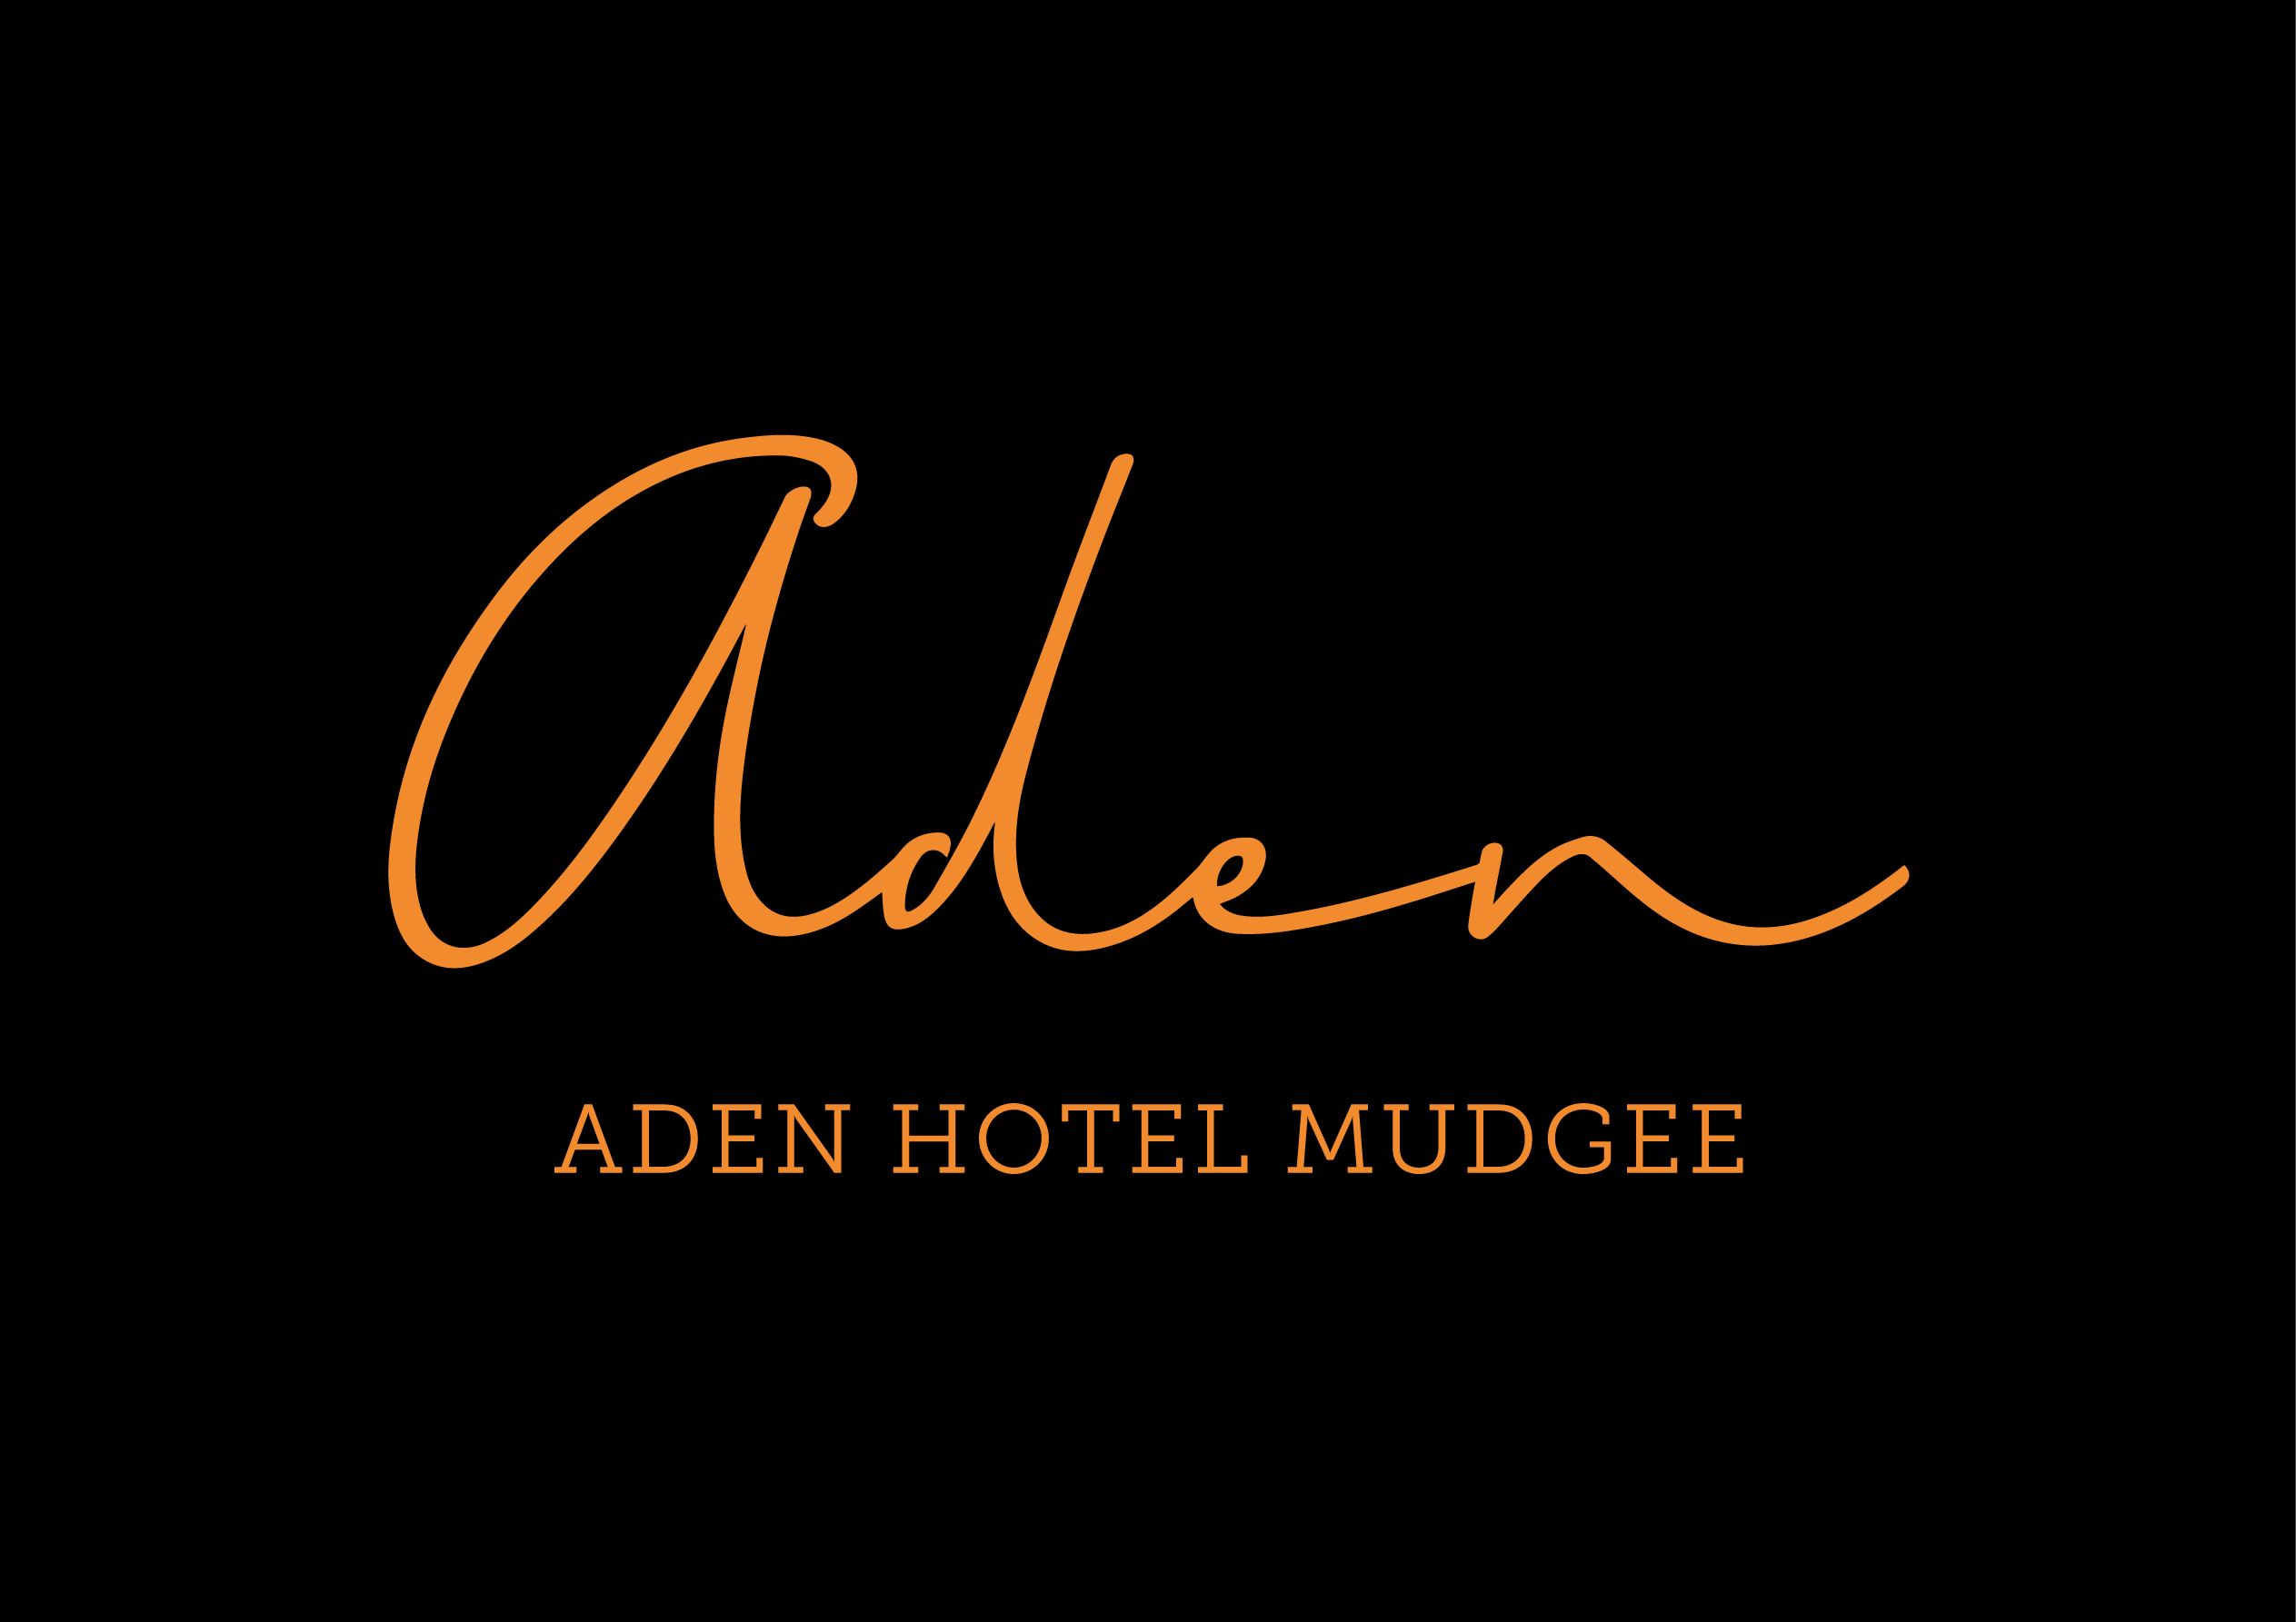 Comfort Inn Aden Hotel Mudgee - Phillip Island Accommodation